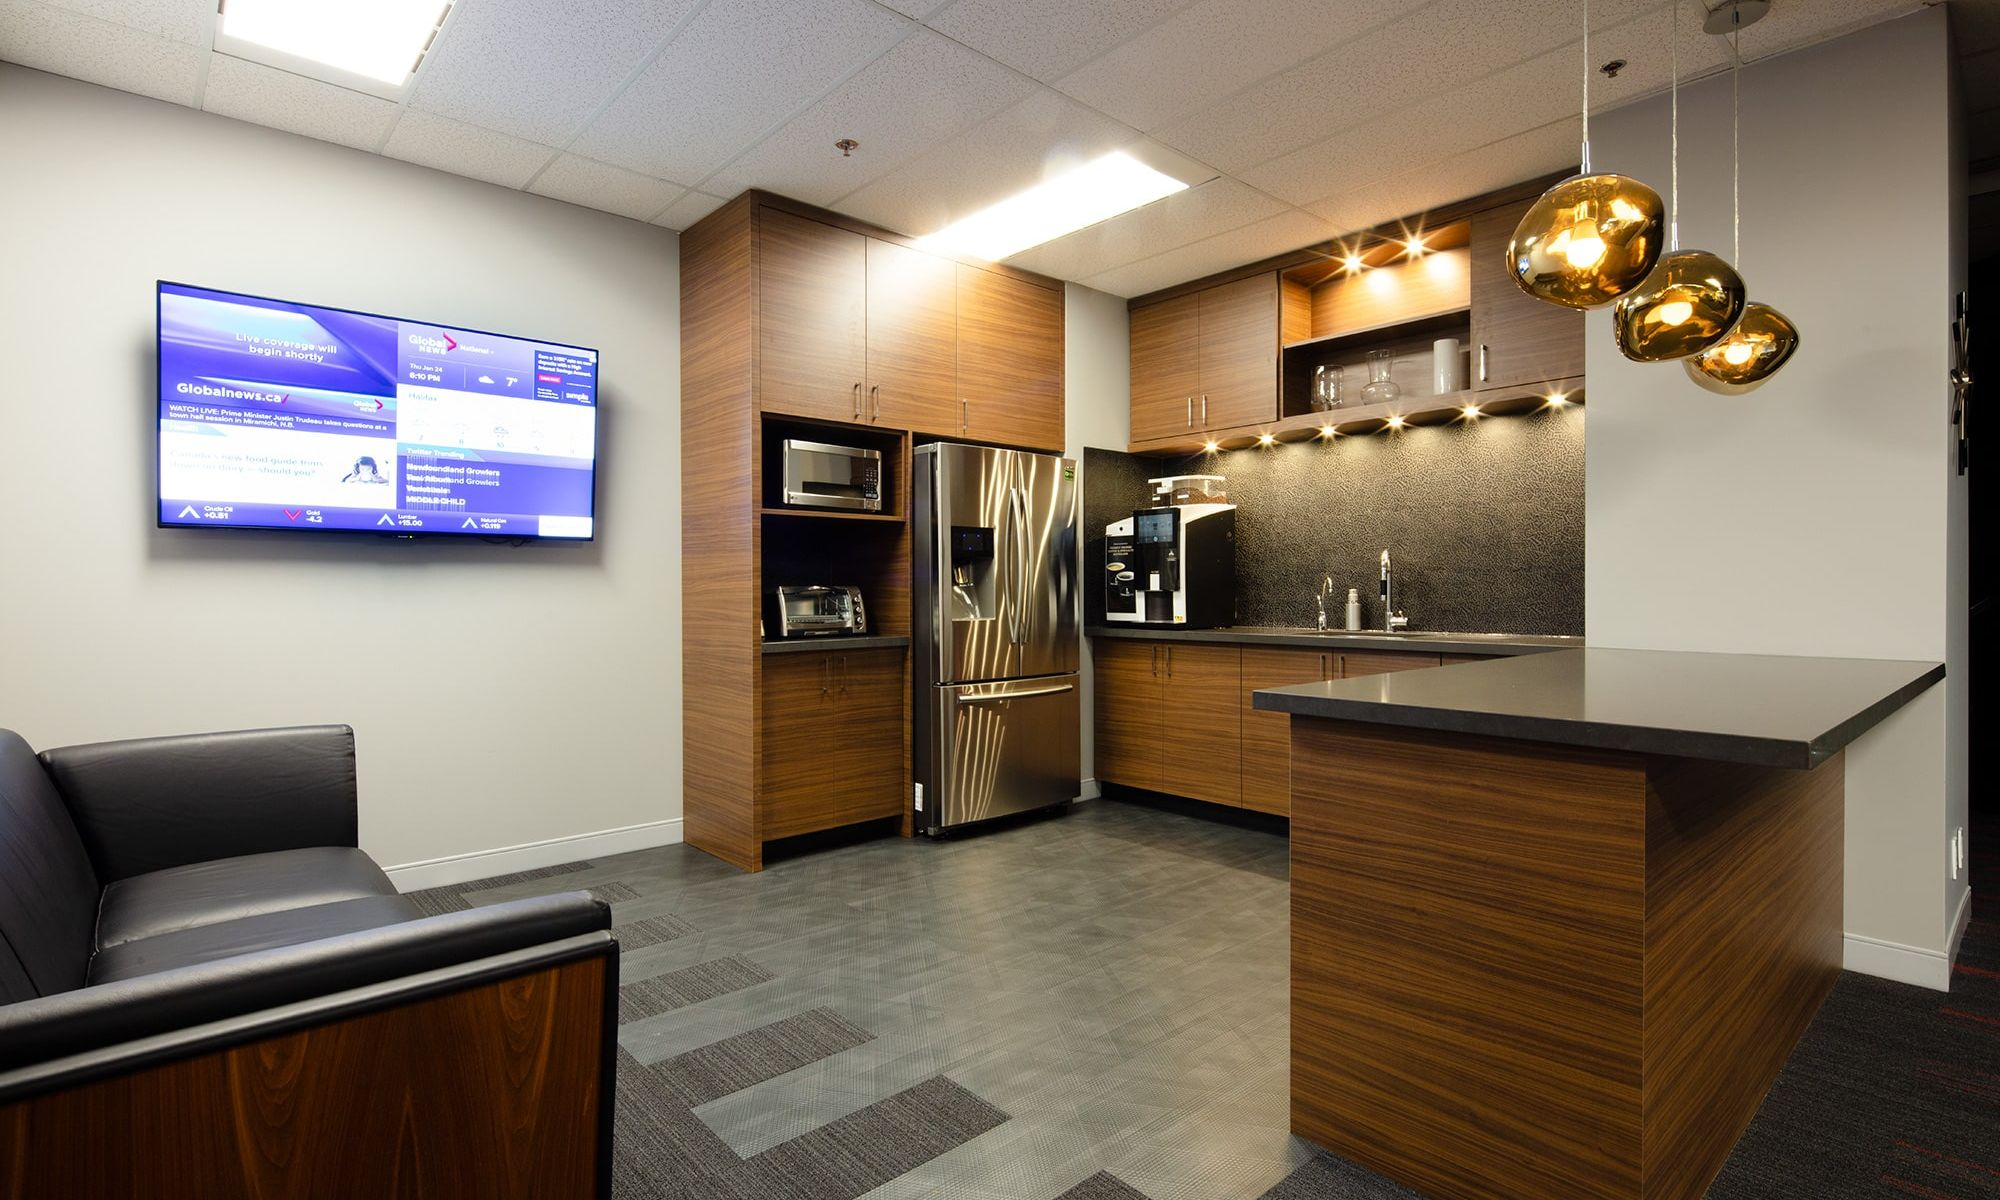 G.L. Smith Office Suite 800 Toronto